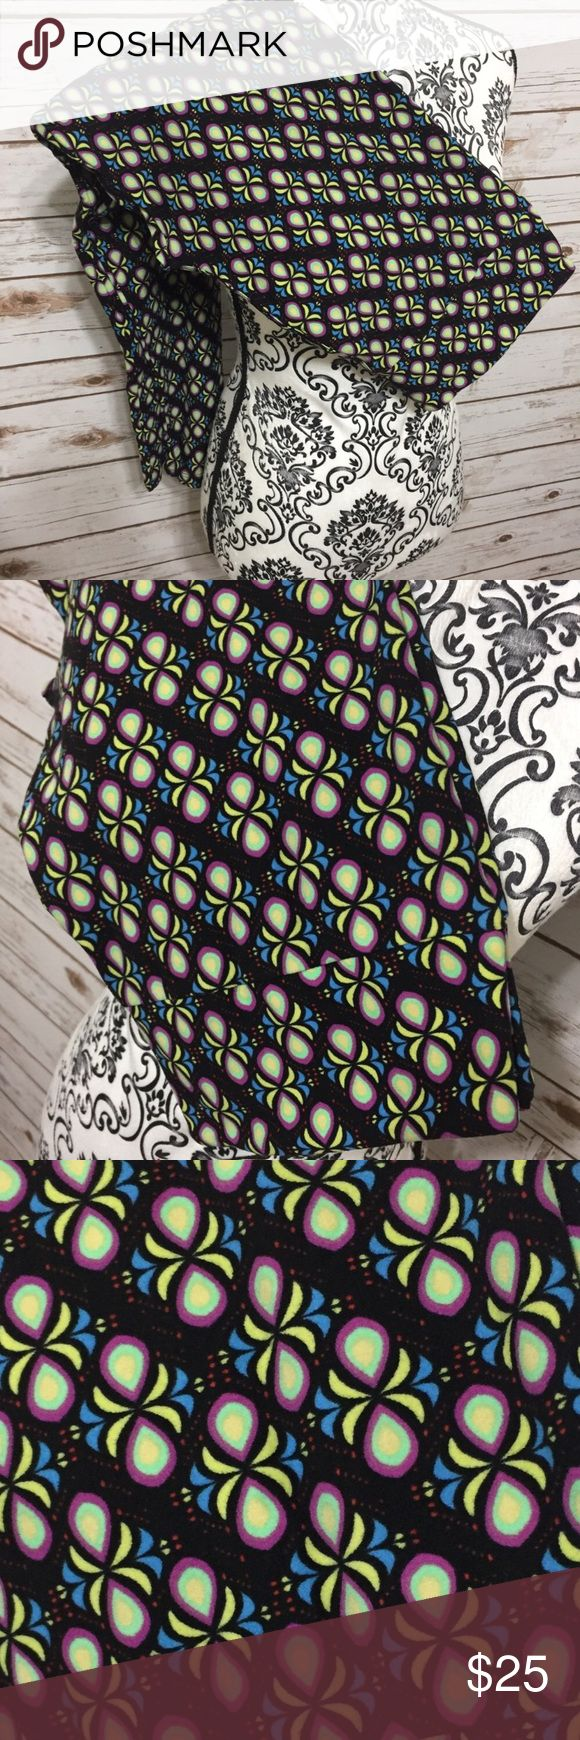 LuLaRoe TC Leggings LuLaRoe Tall & Curvy (TC) multi colored Leggings. Never worn, never tried on, NWT (if you know LLR leggings you know that although they're NEW, leggings DO NOT come with an actual tag since the tag since would ruin the fabric). There are cards, however you will only get a card if you buy TWO leggings. *I'm not a LuLaRoe Consultant! Offers are welcome but I don't trade. LuLaRoe Pants Leggings